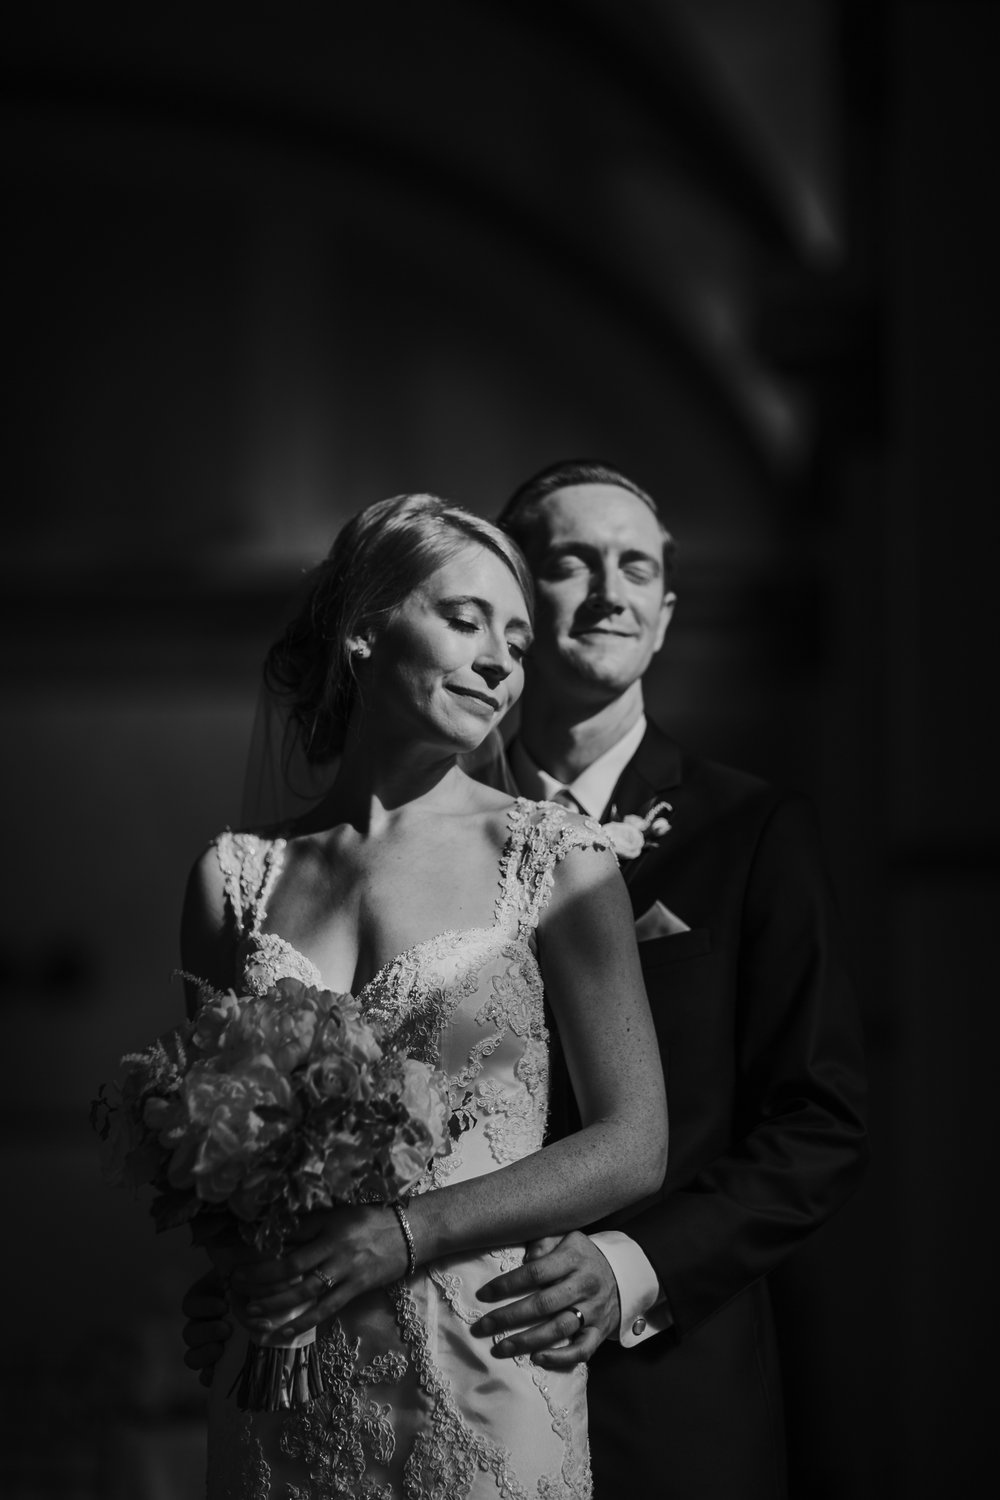 Michael and Kelly - the ashton depot - wedding DFW - wedding photographer- elizalde photography (64 of 150).jpg